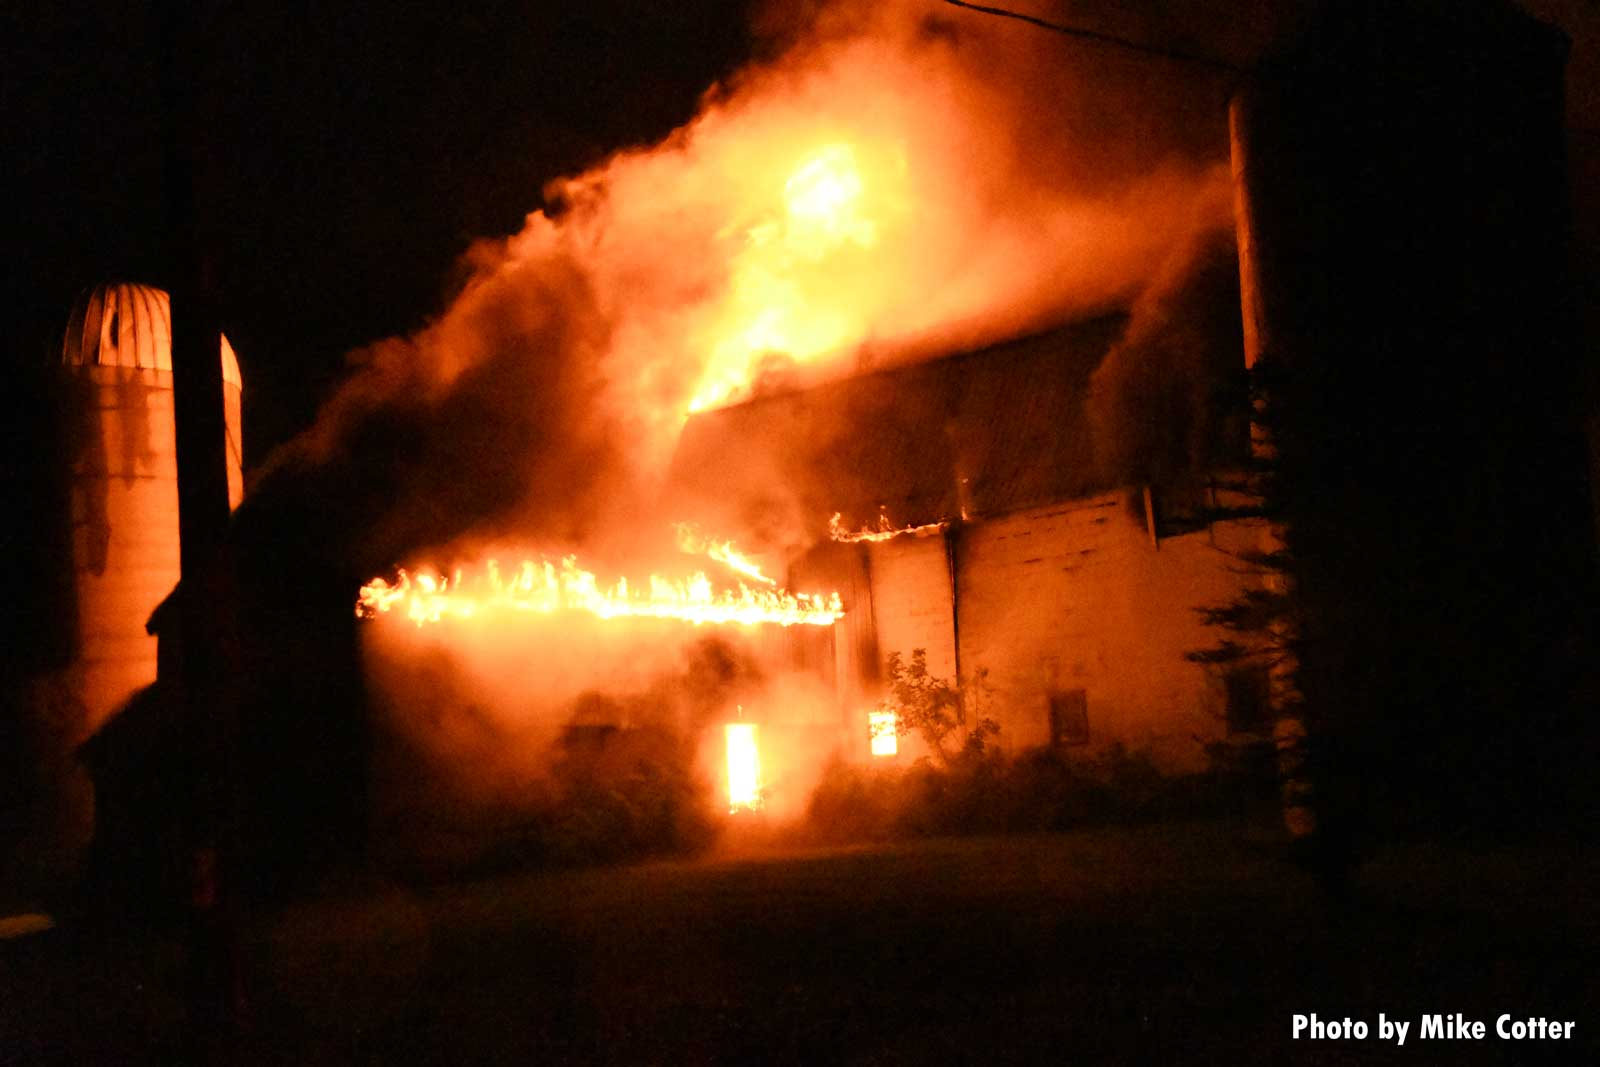 Fire in a barn structure